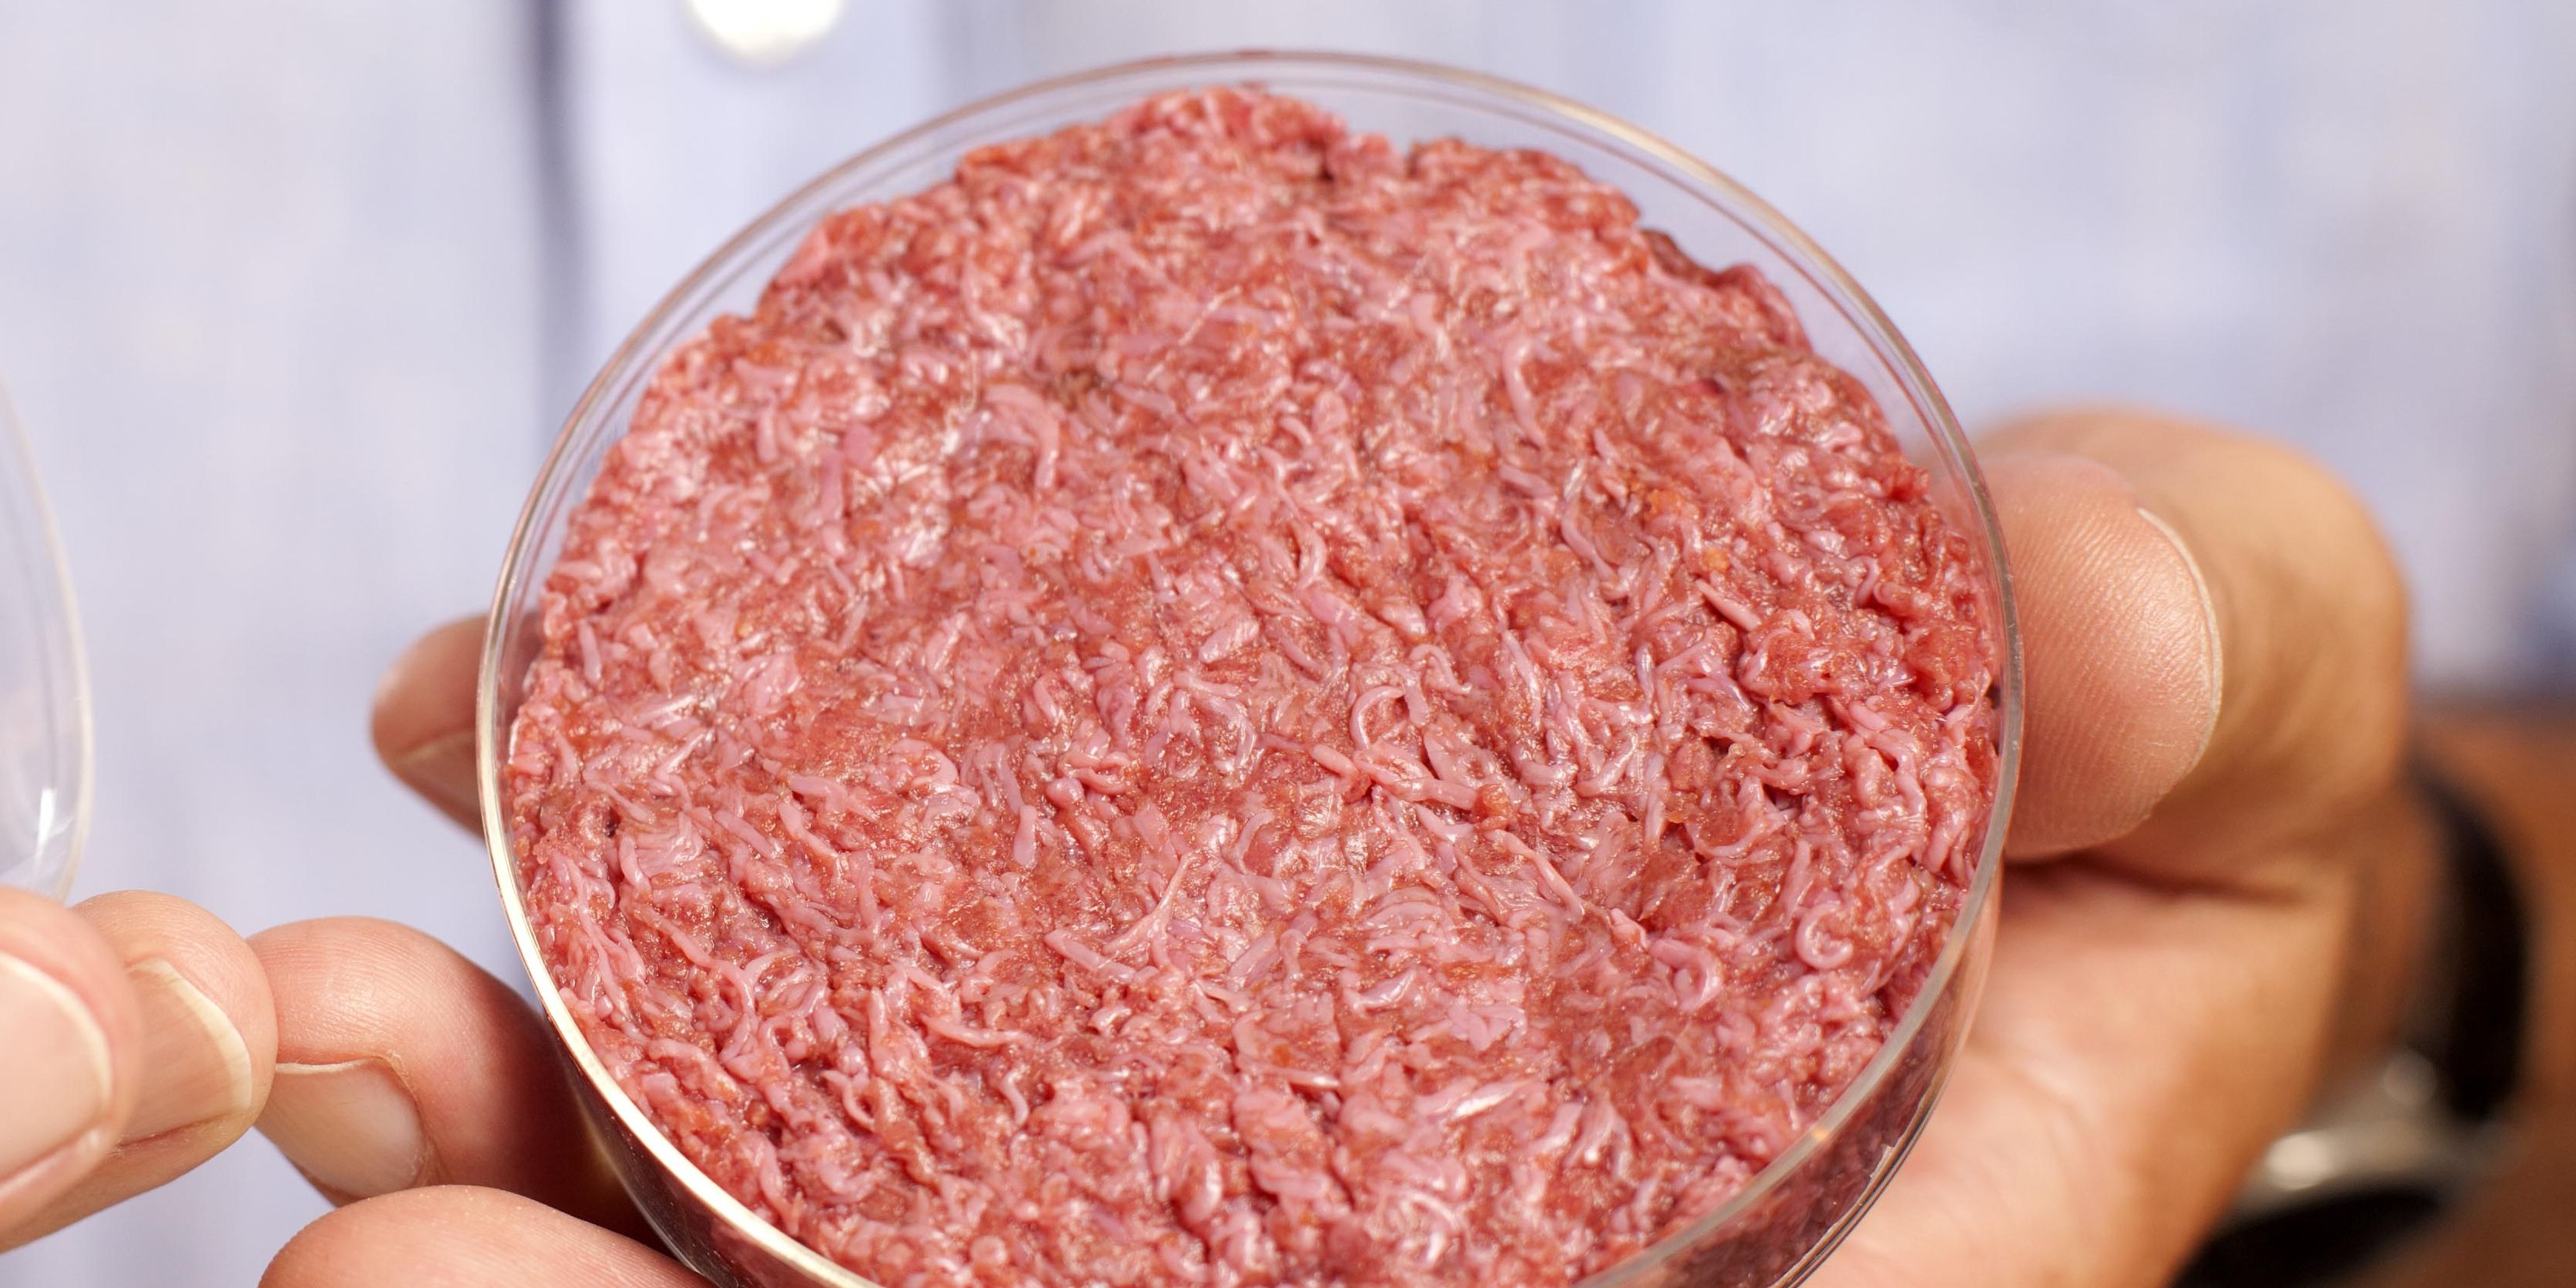 Lab-grown meat: Would you eat it?